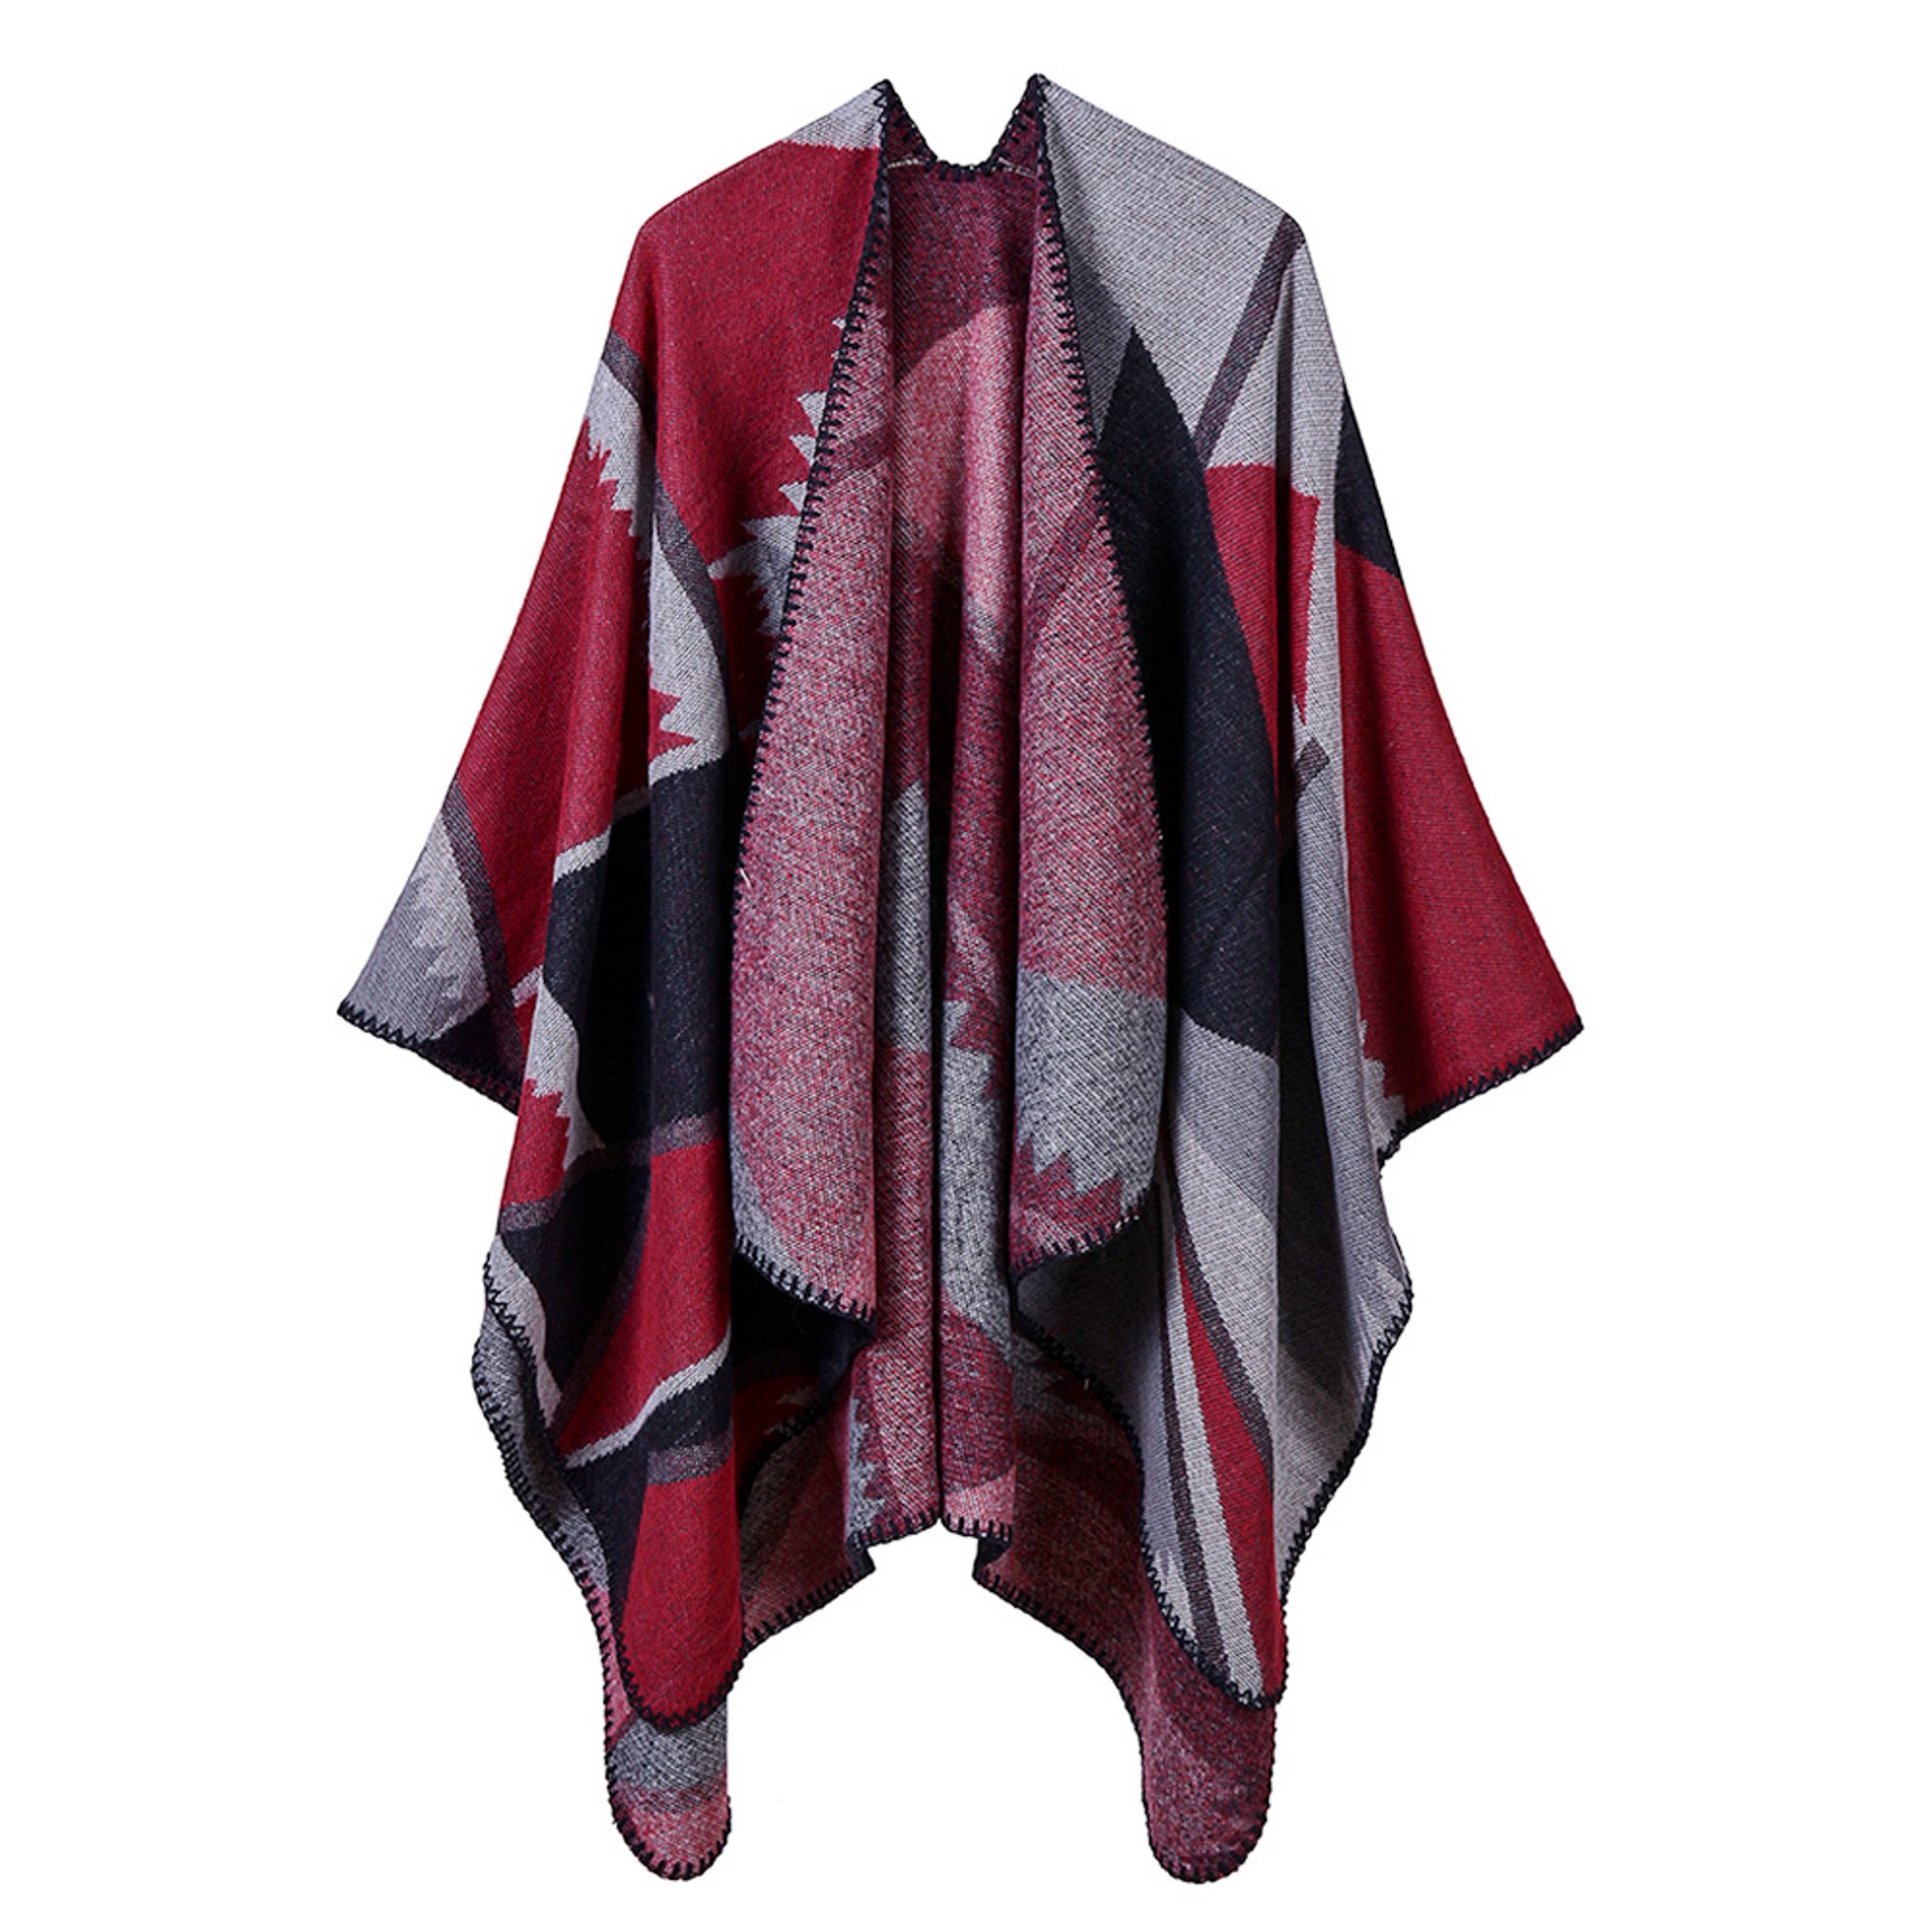 Vintage Women Faux Cashmere Poncho Cardigan Sweater Geometric Print Capes Shawl Scarf Loose Outerwear